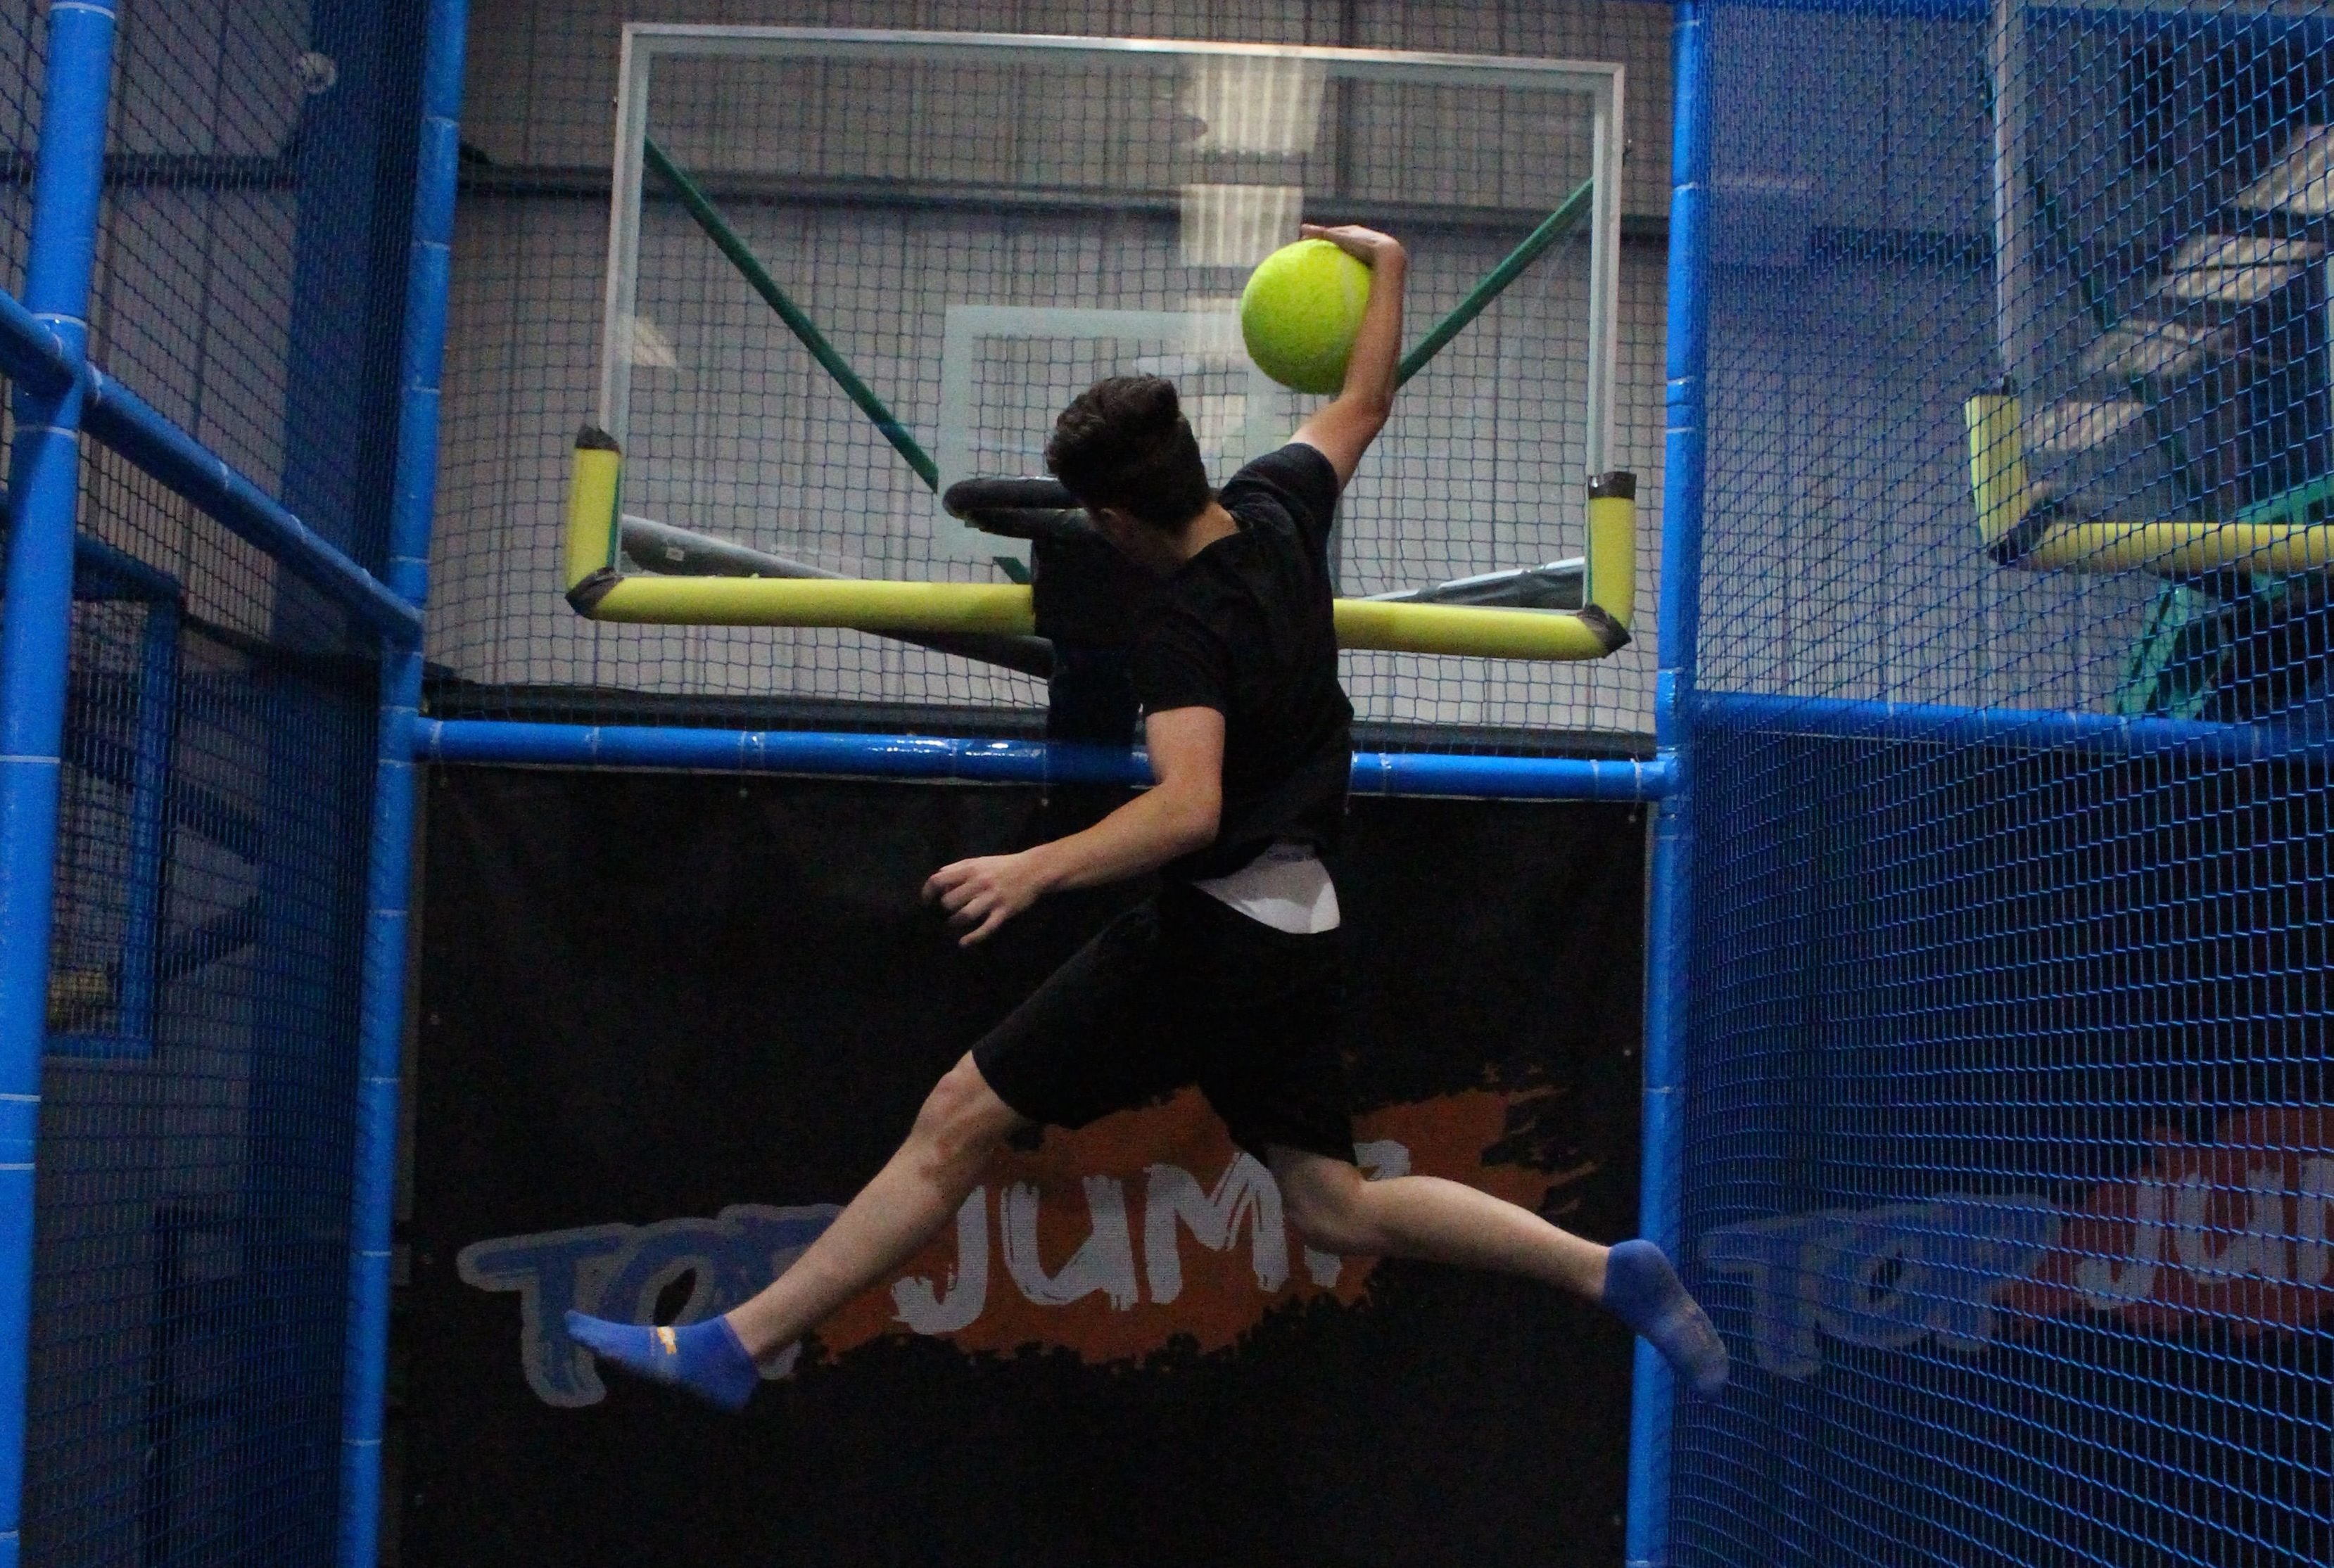 Forget Xscape and get down and defy gravity at Top Jump, Milton Keynes. Image